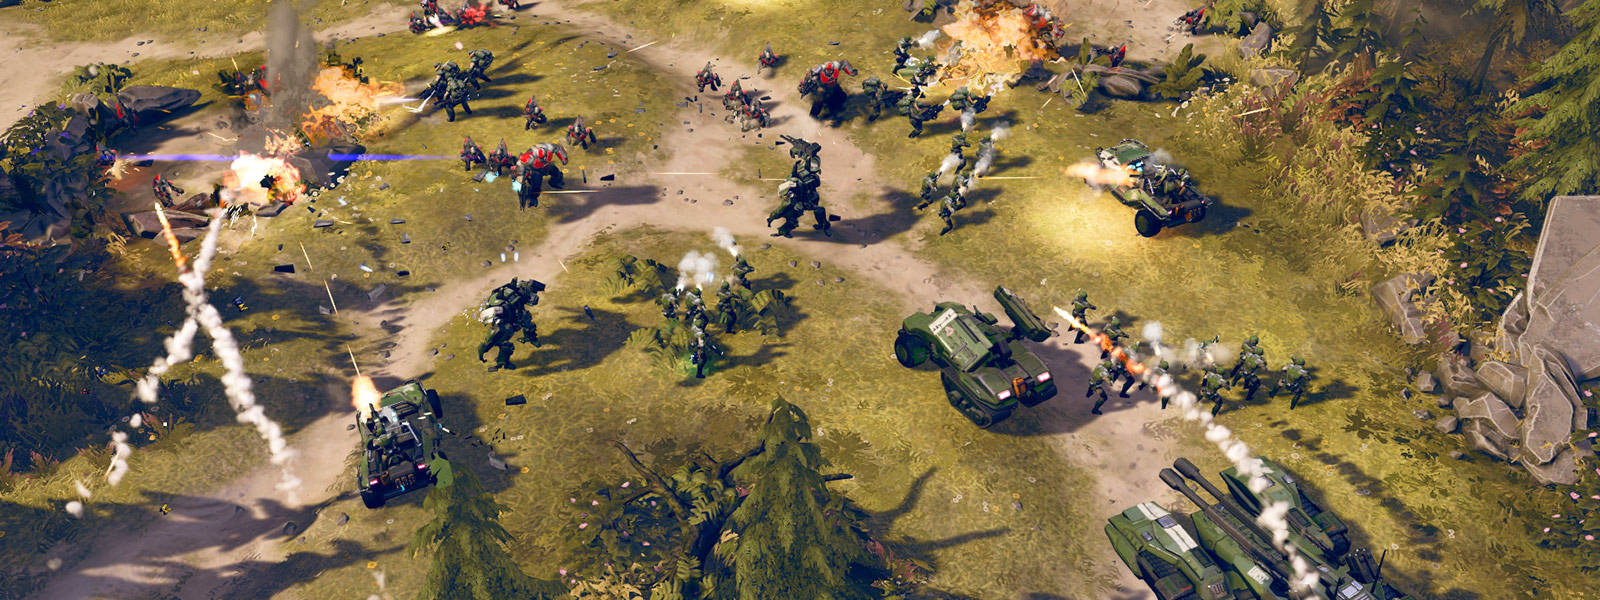 top view of Halo Wars 2 battle scene